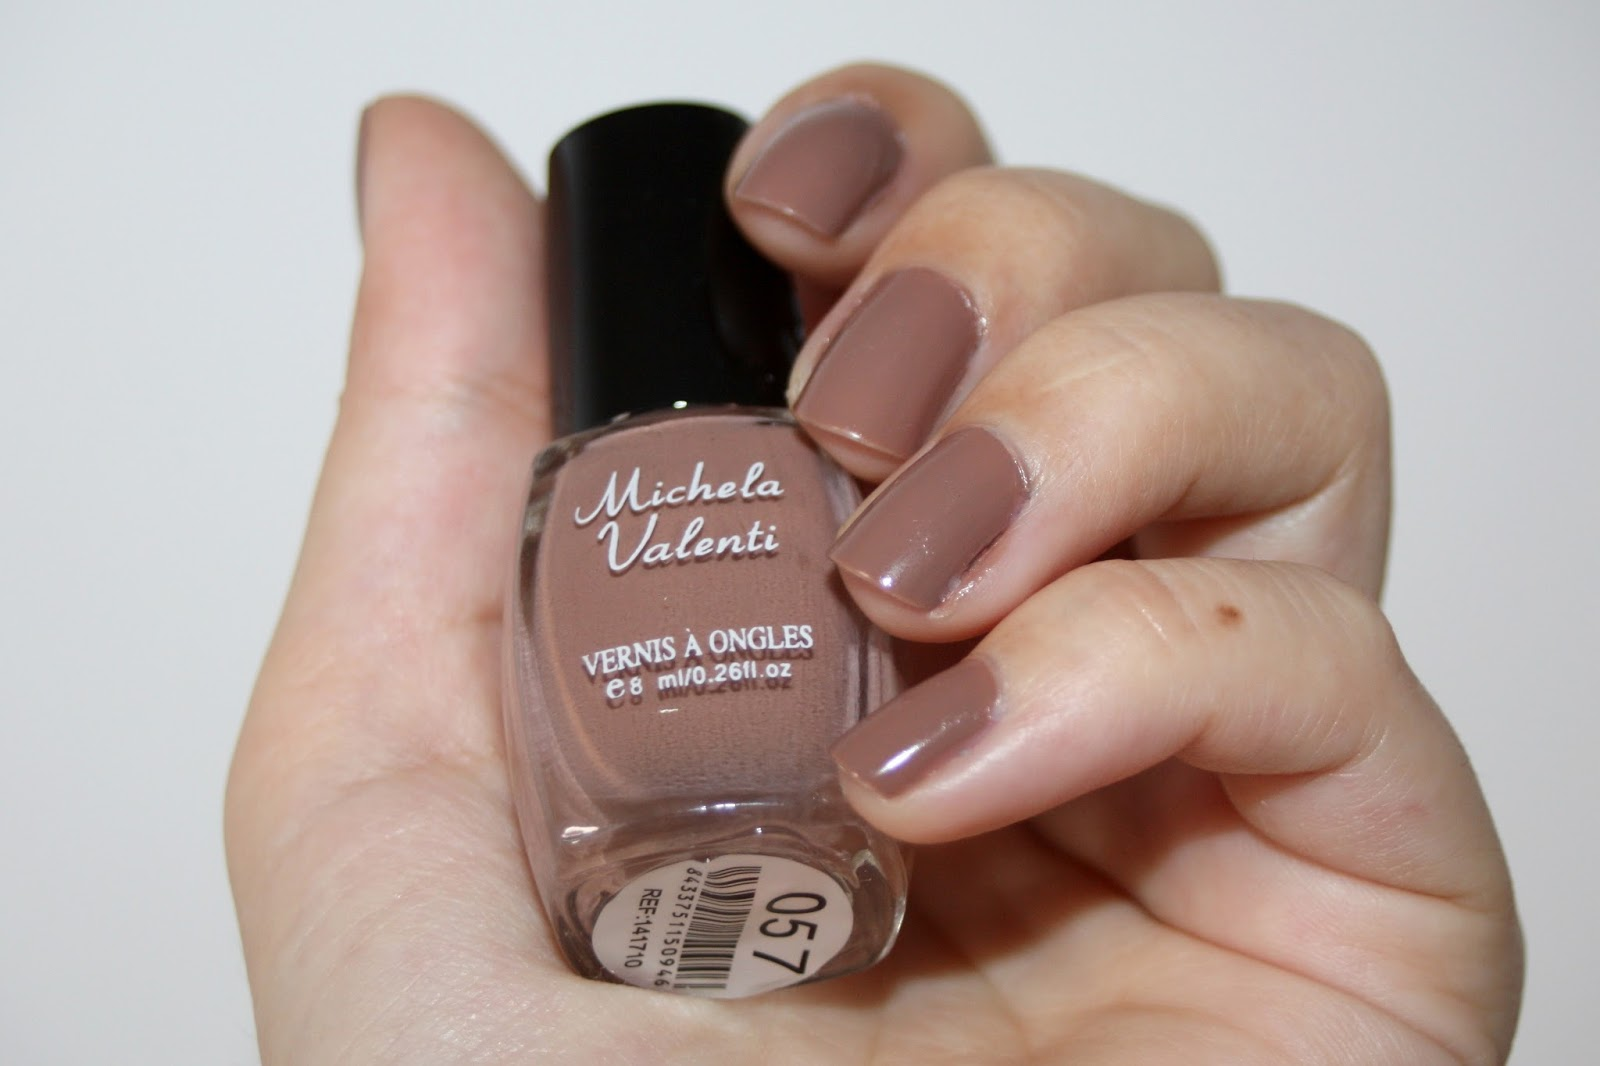 Super Make-up by Linoa: Le vernis marron glacé de Michela Valenti SZ63